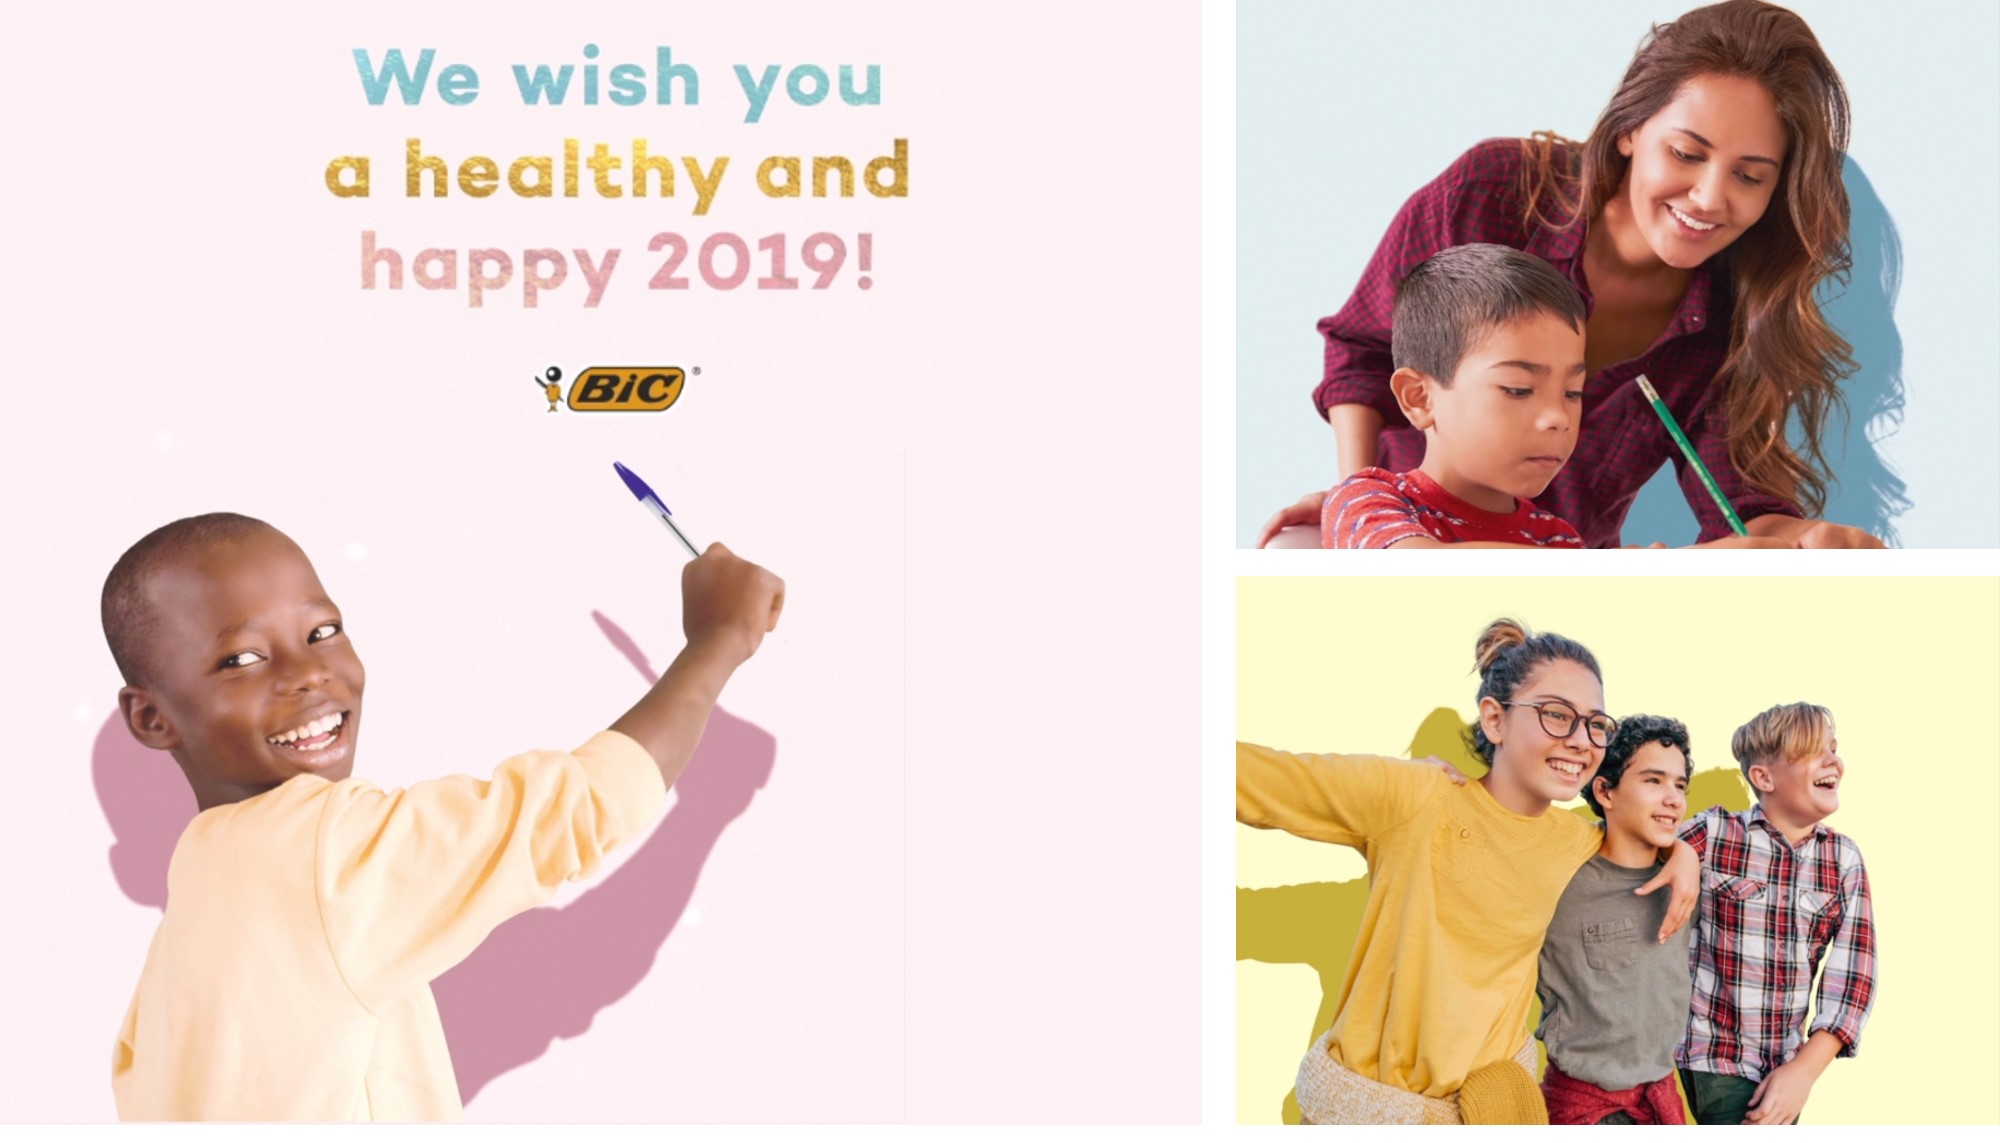 season greetings from bic